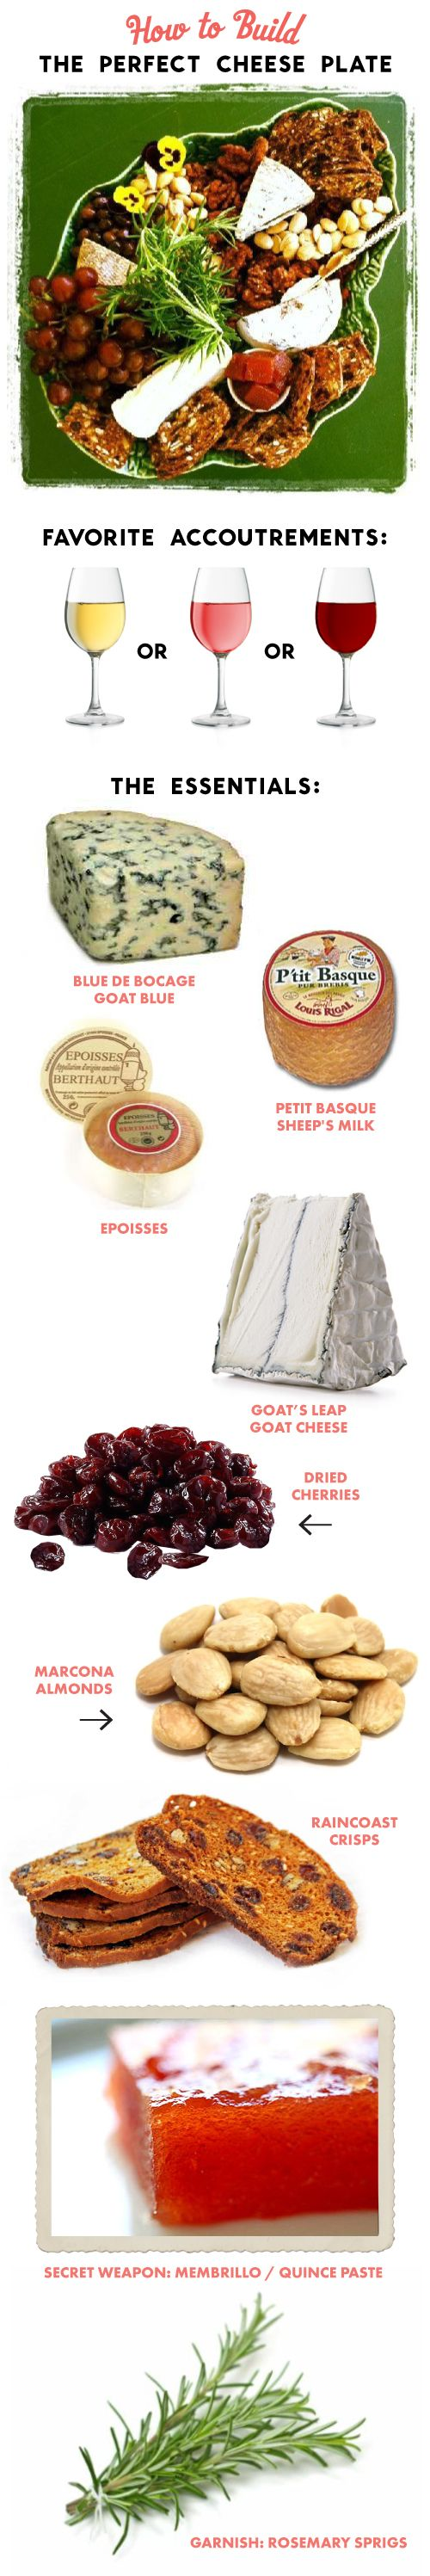 How to Build the perfect Cheese Plate.